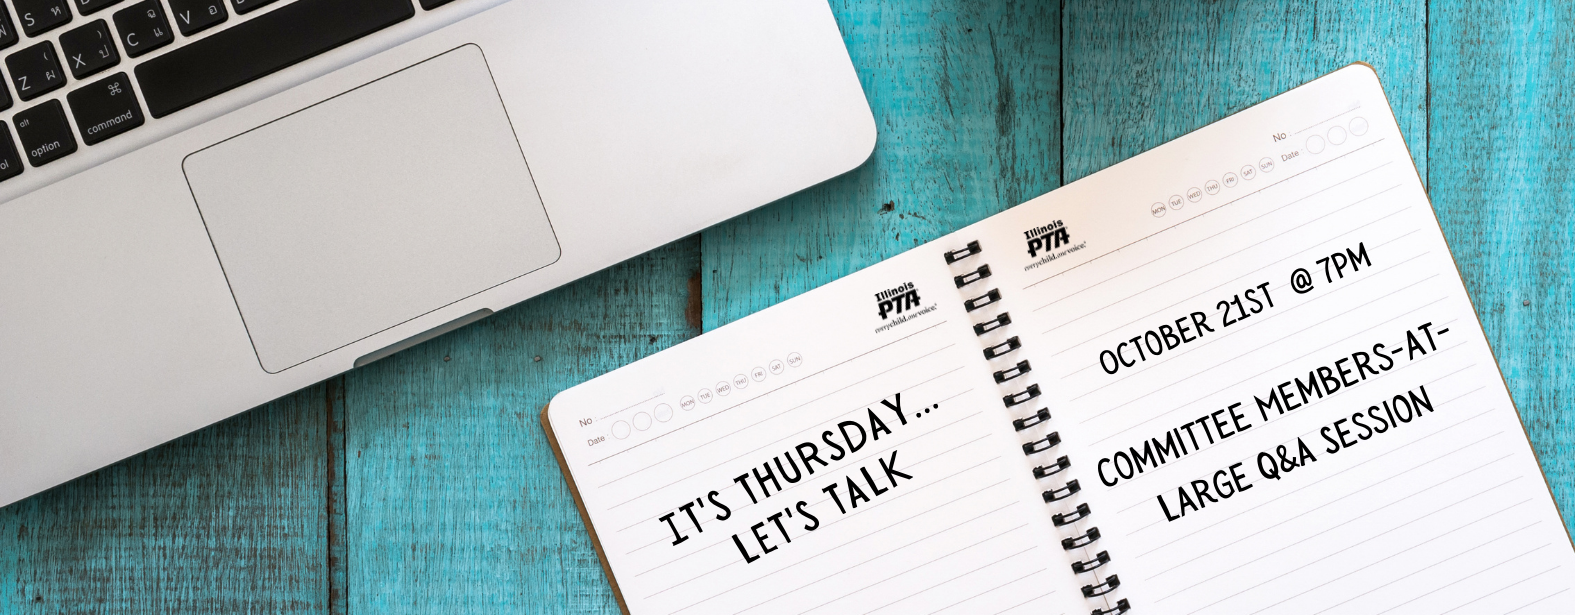 It's Thursday...Let's Talk - Committee Members-at-Large Q&A Session web banner